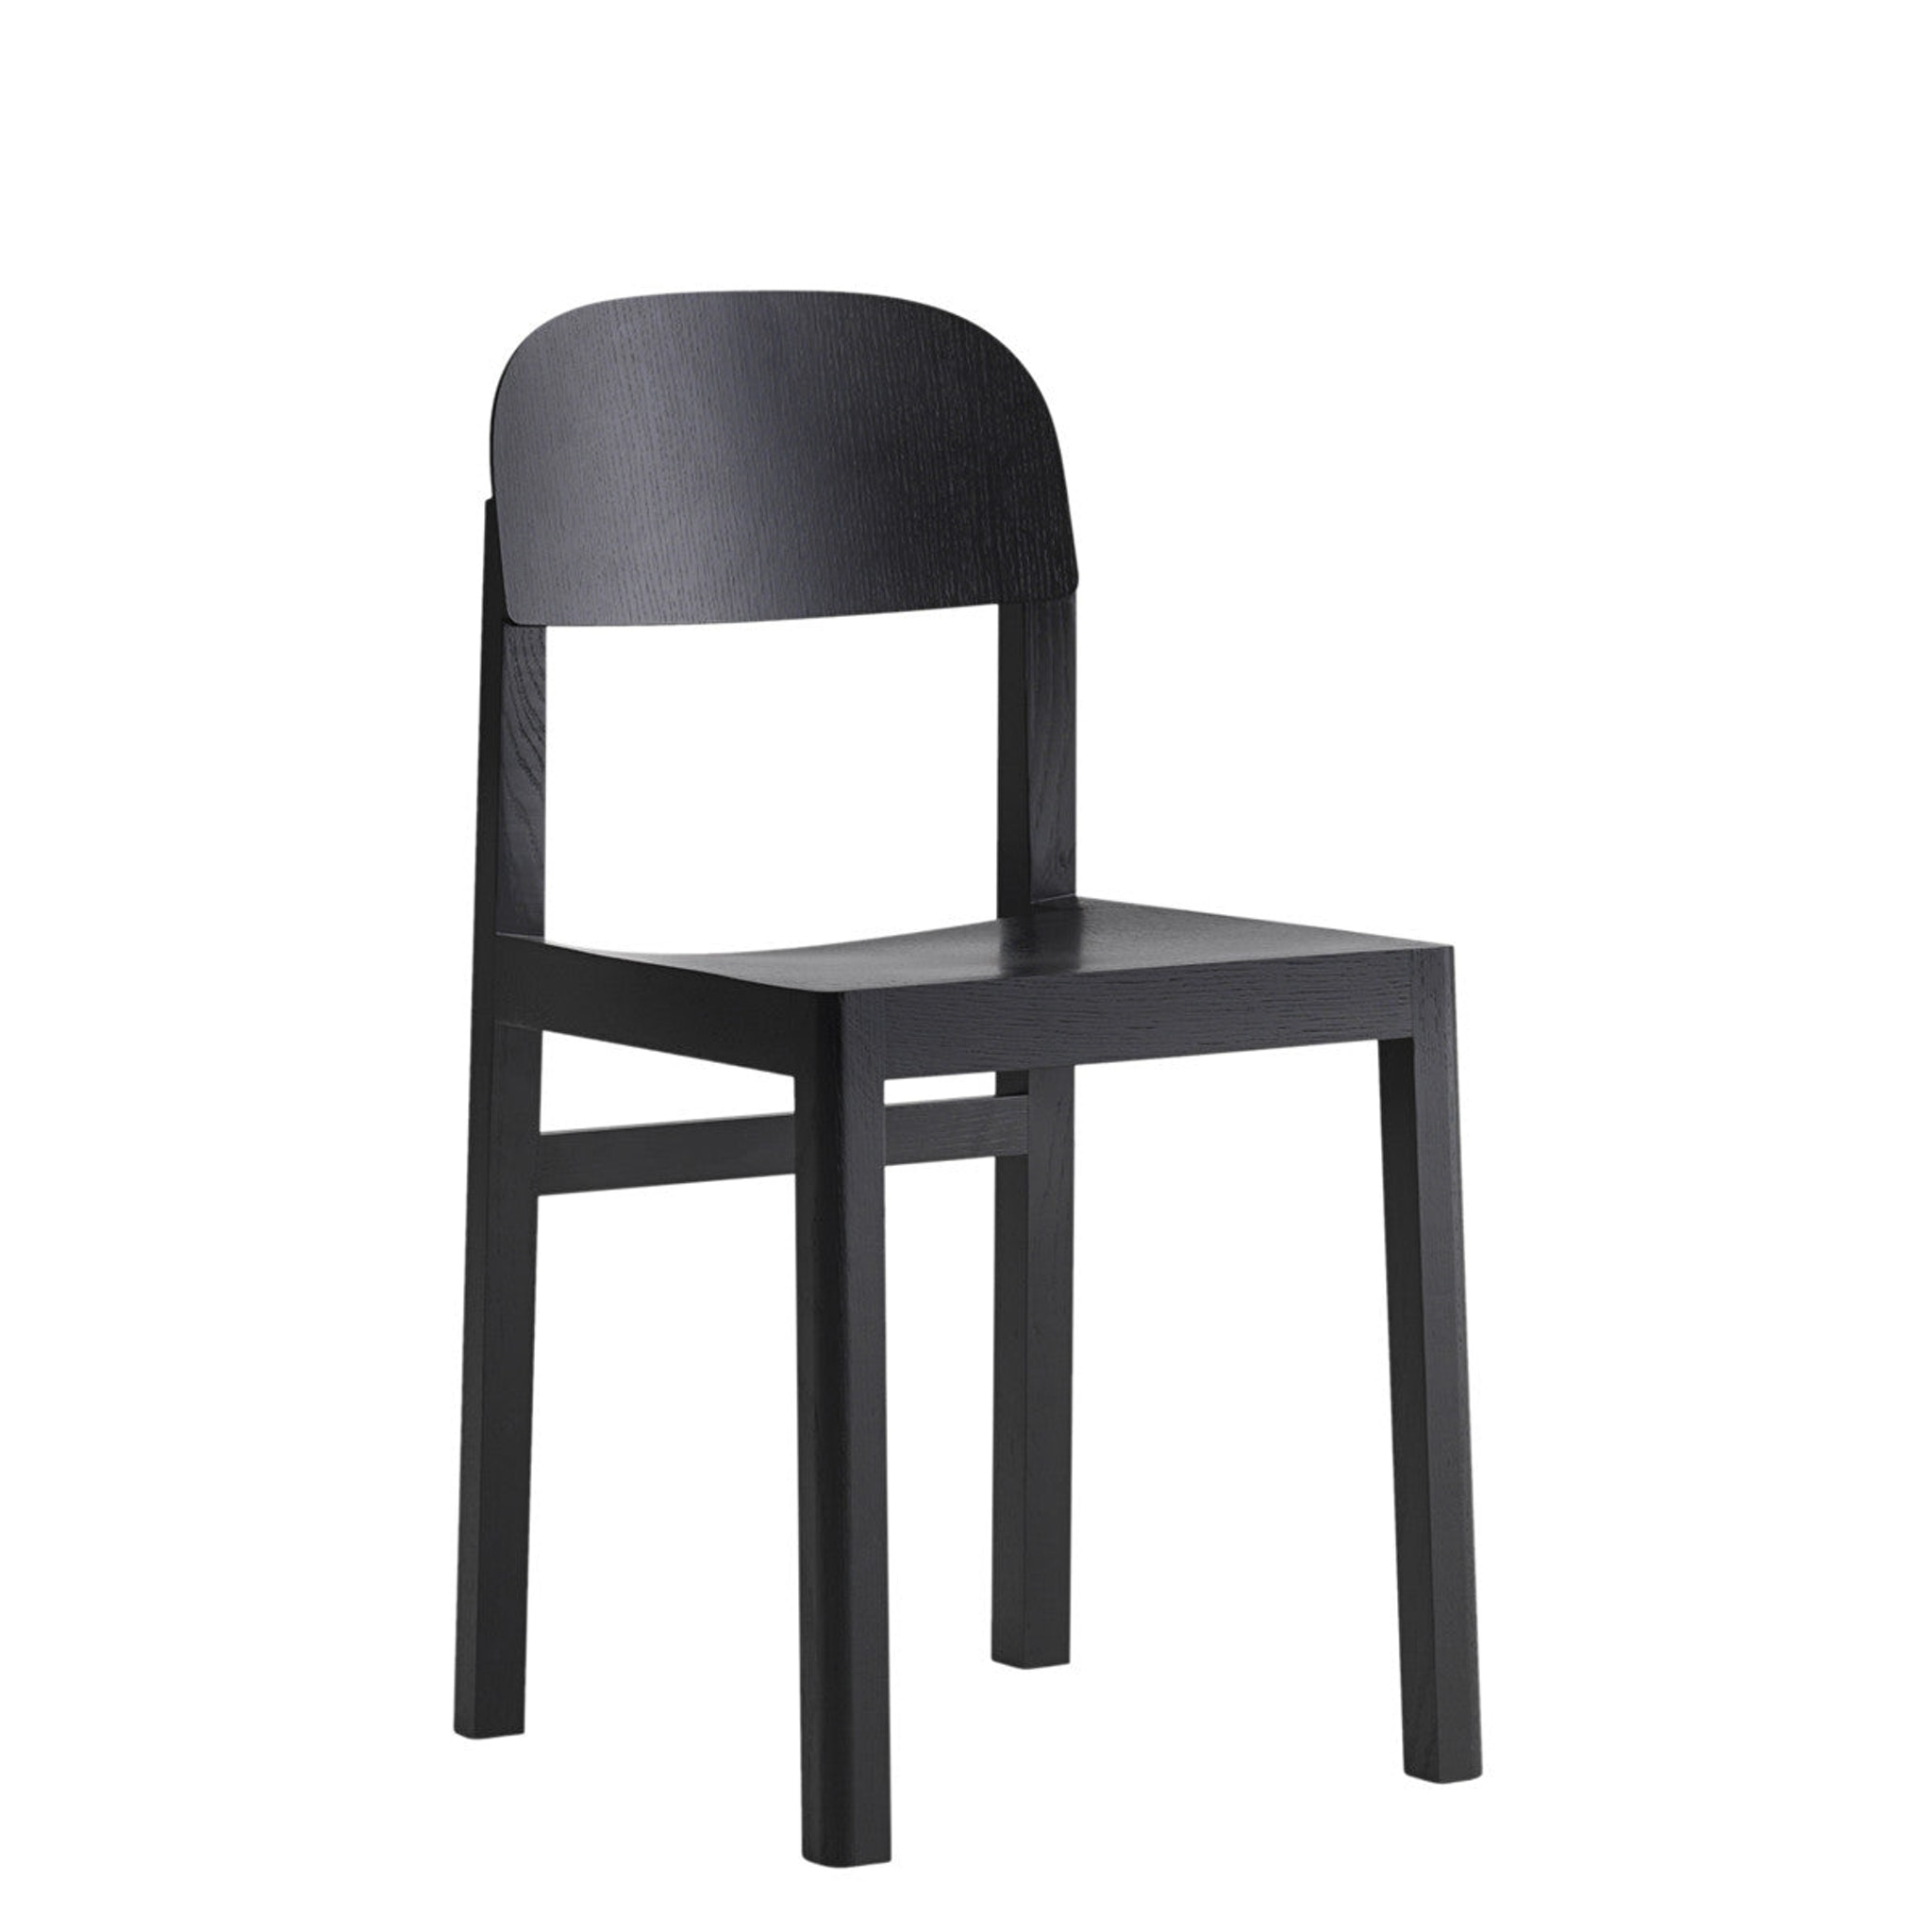 Workshop Chair by Muuto